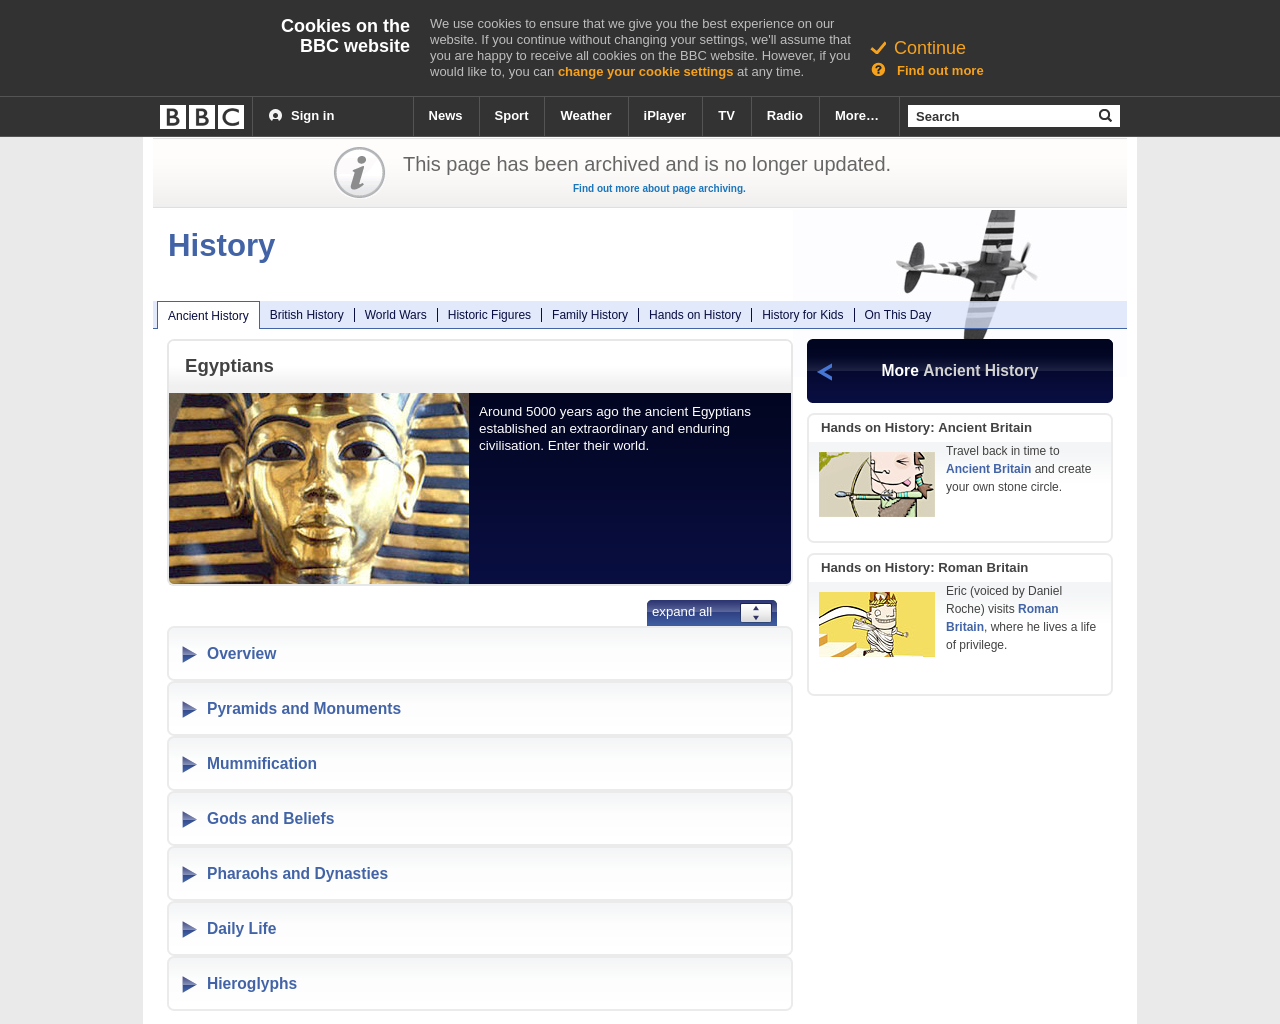 BBC: Ancient Egyptians